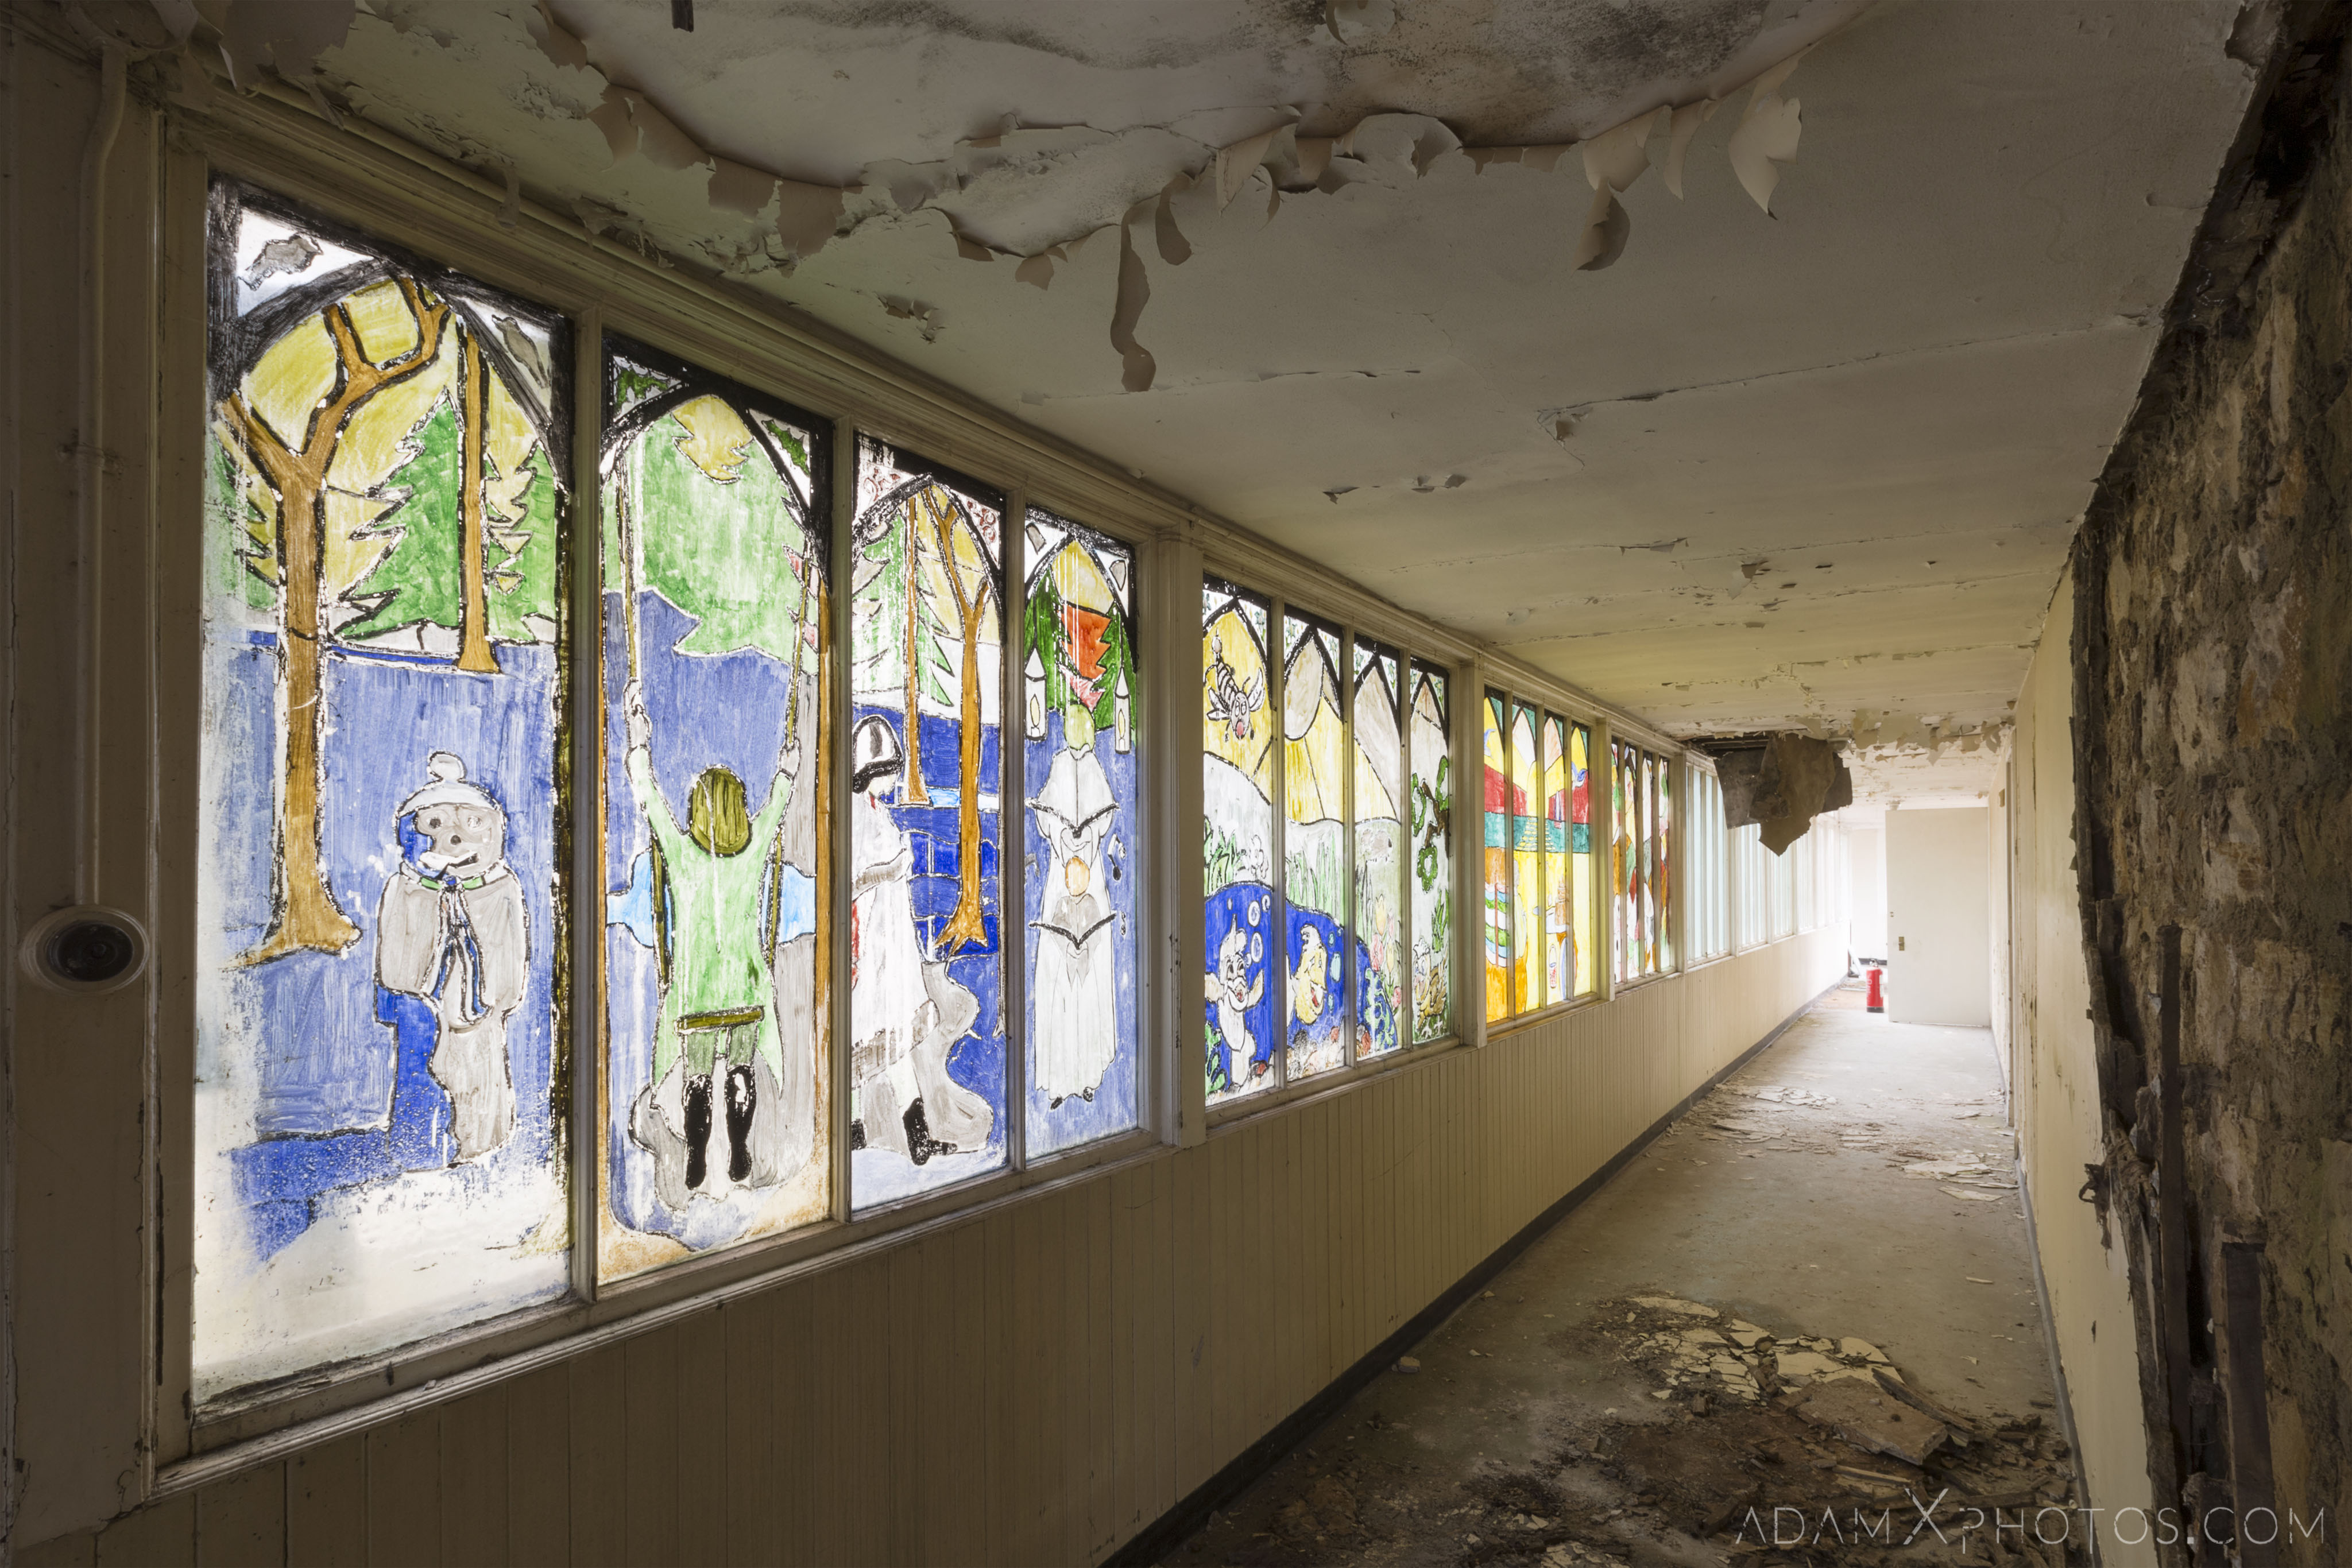 corridor children's ward colourful windows stained glass home made Stratheden Hospital Fife Scotland Adam X Urbex Urban Exploration Access 2018 Abandoned decay ruins lost forgotten derelict location creepy haunting eerie